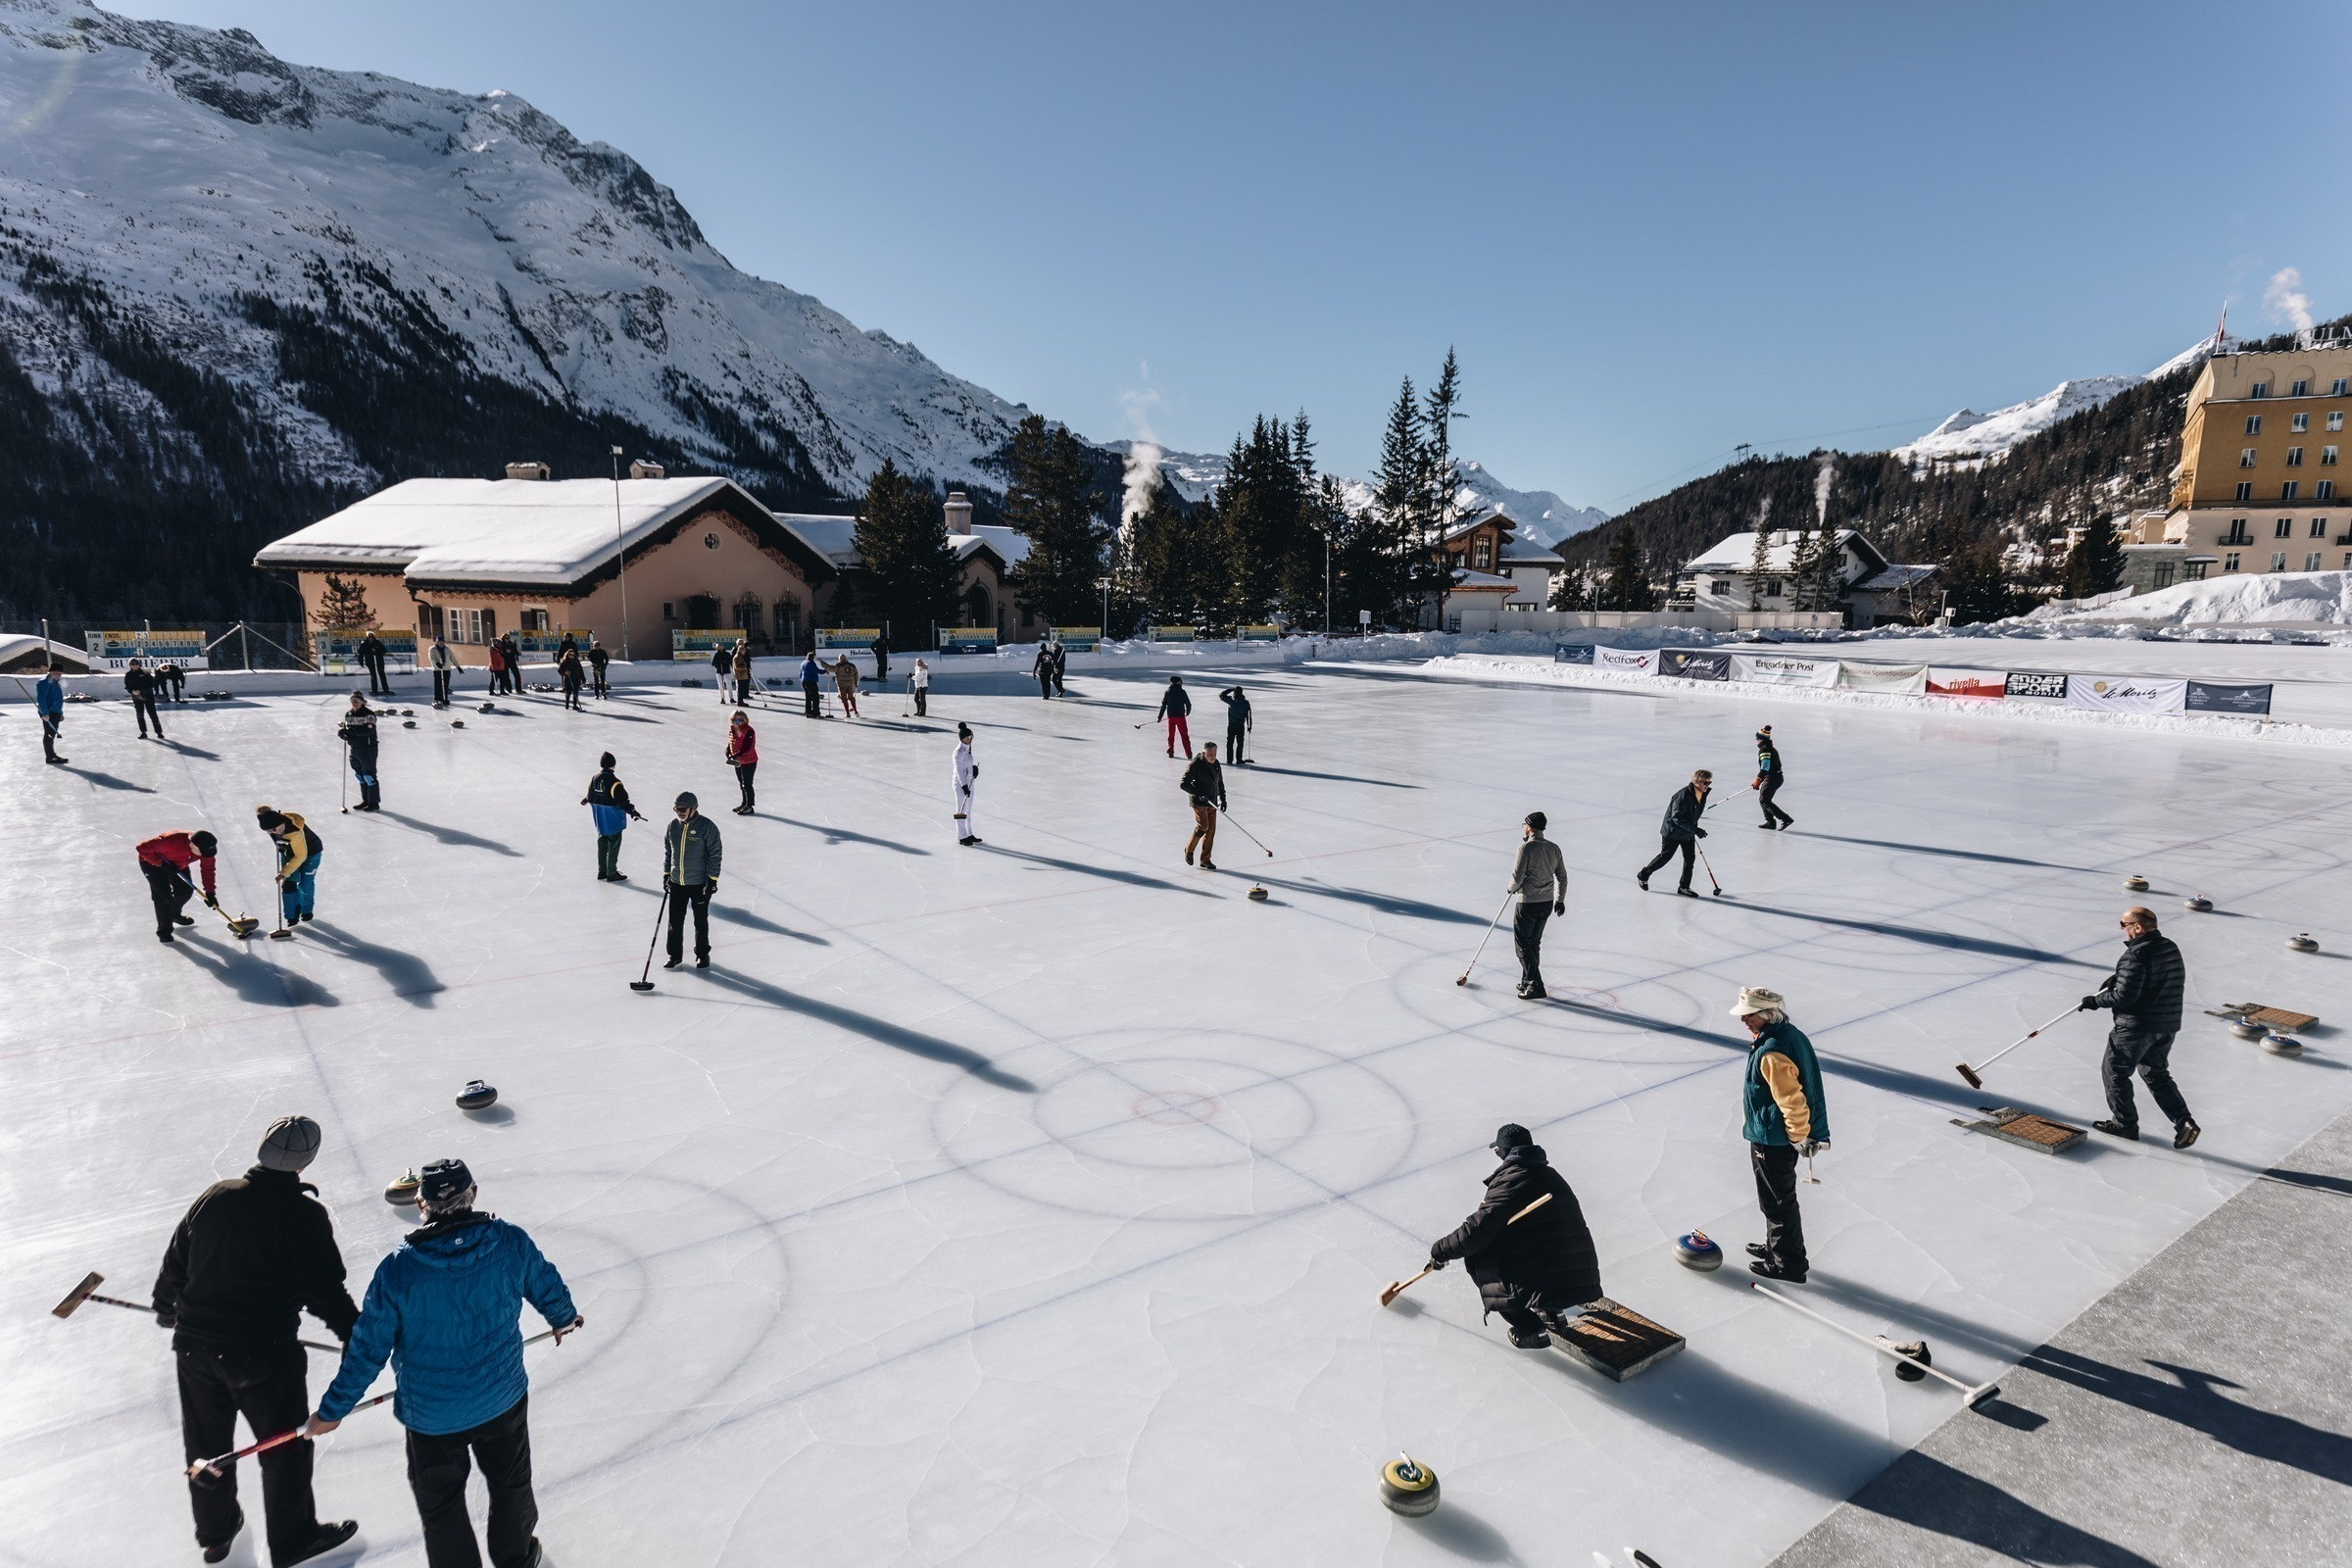 Curling: Hotel Soldanella - Your home in St. Moritz - Cup